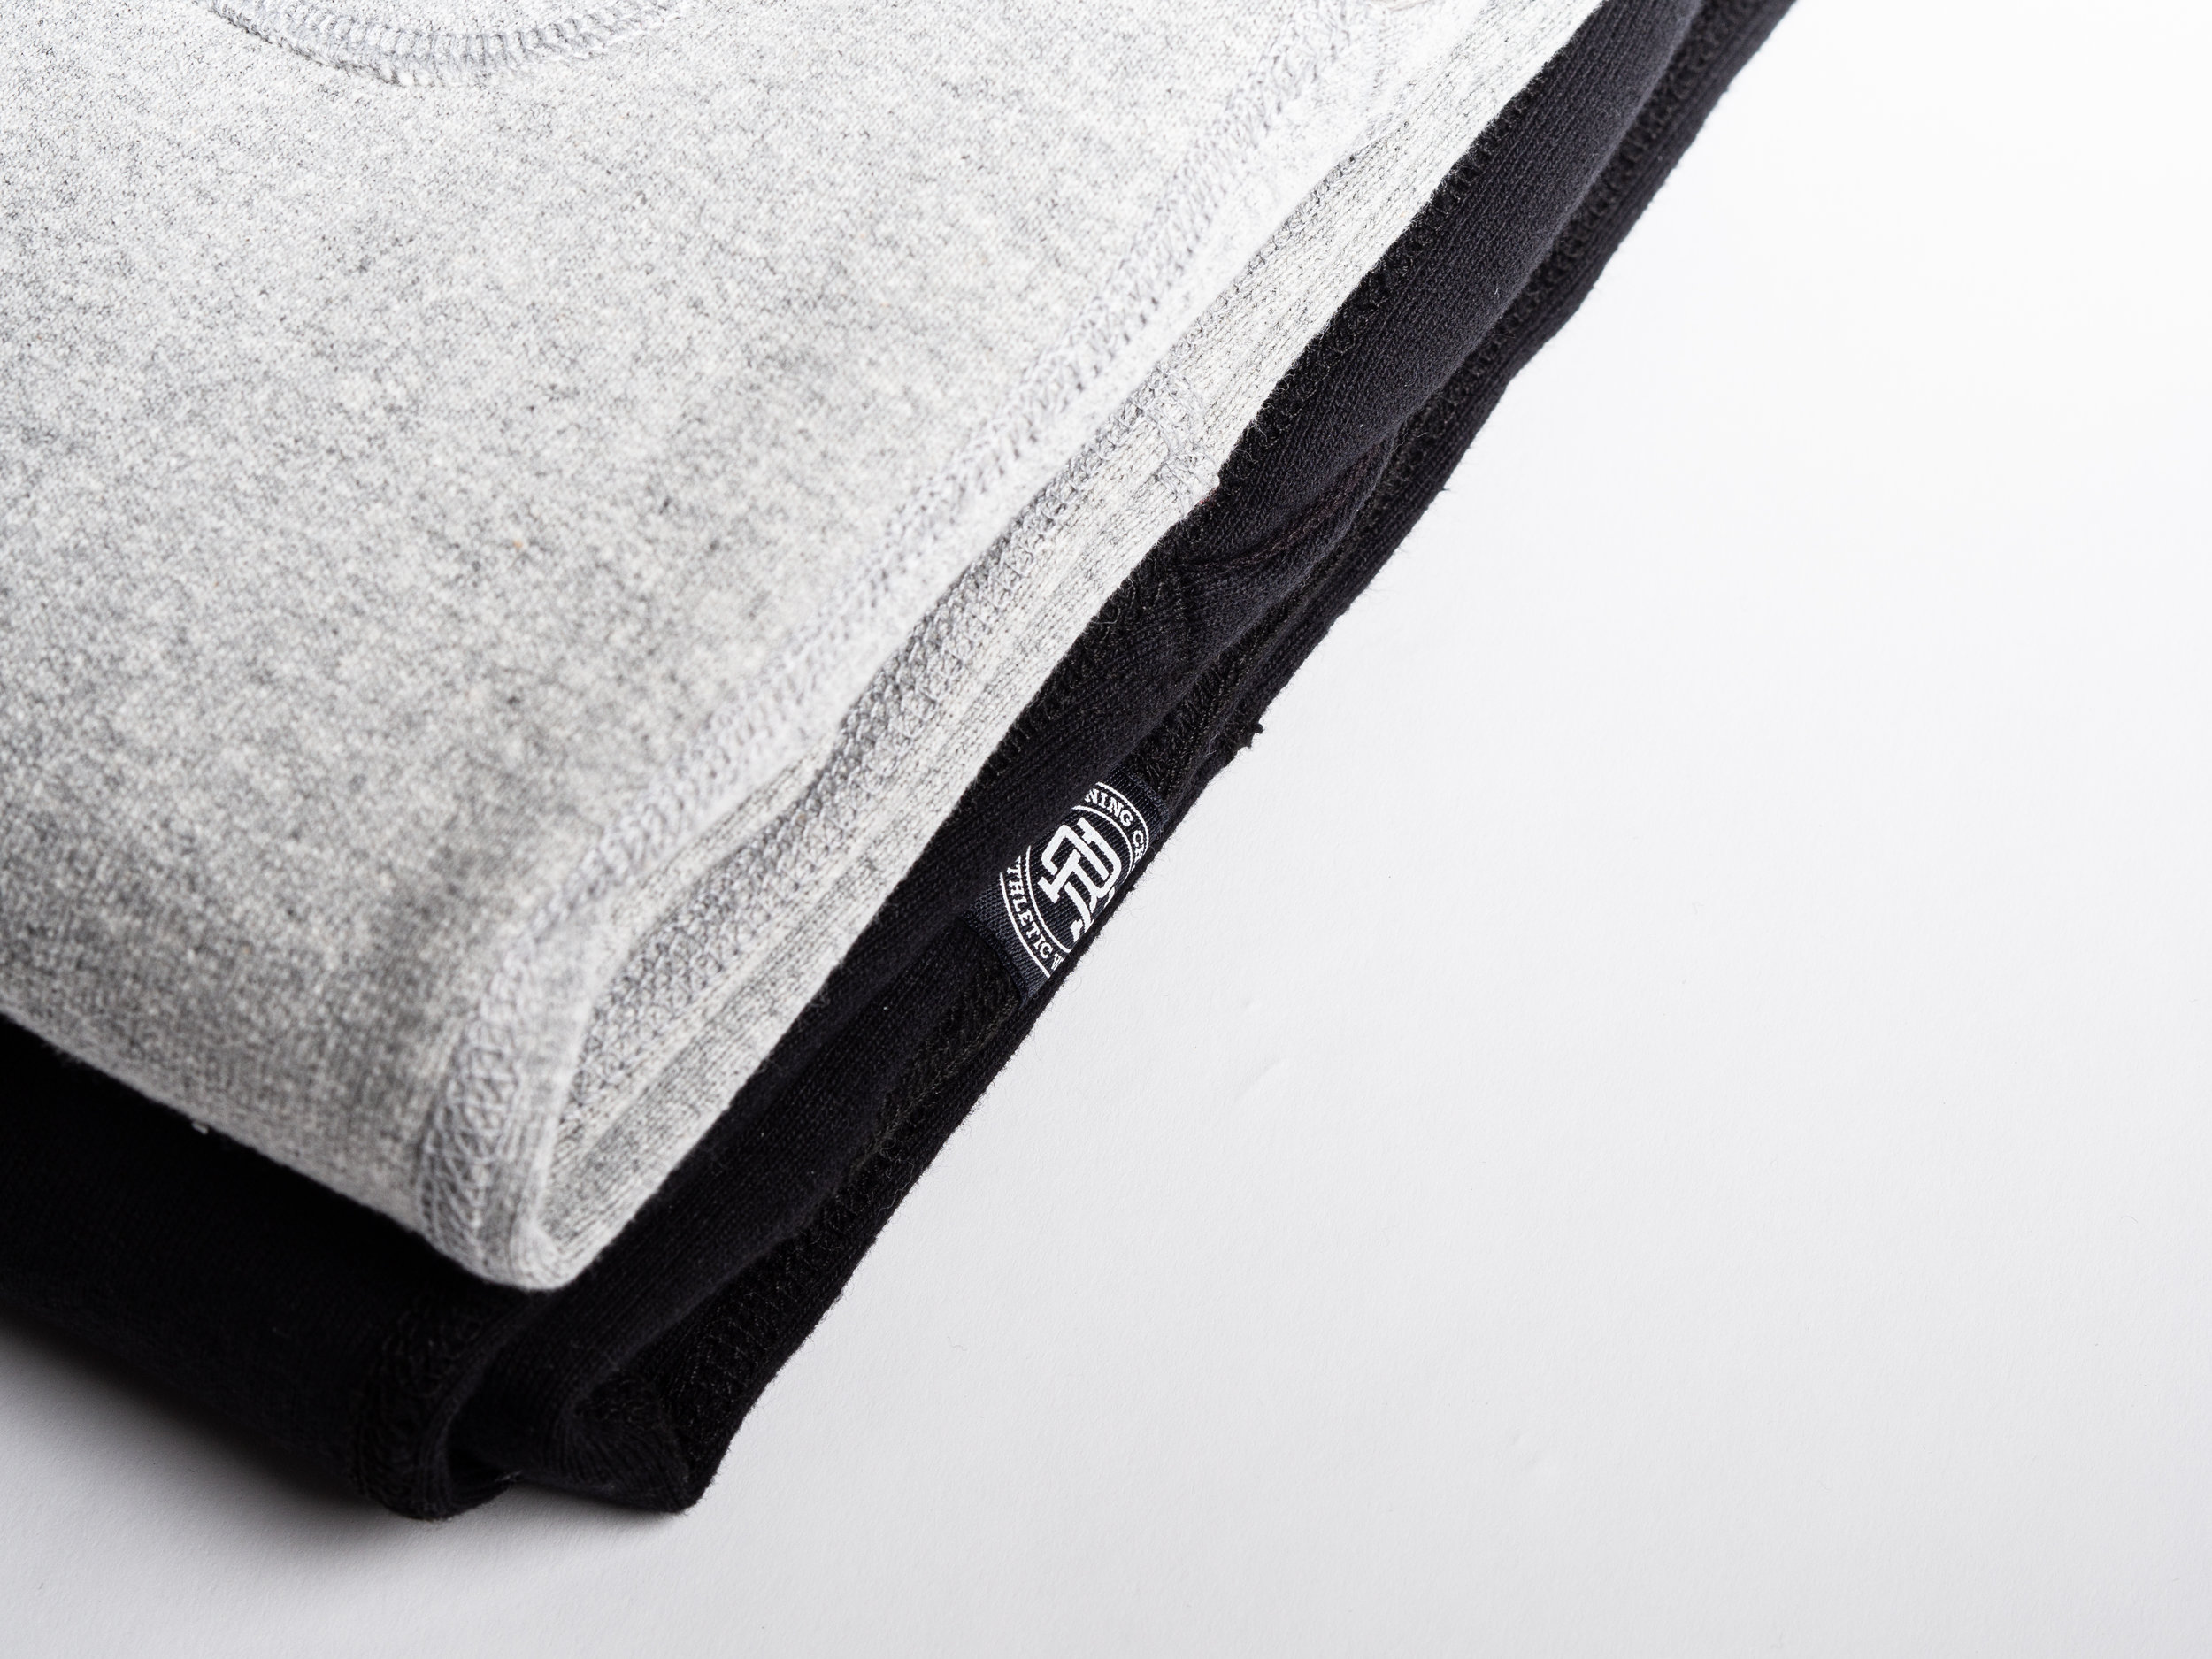 Reigning Champ Heavyweight Fleece    VIEW THIS FEATURE